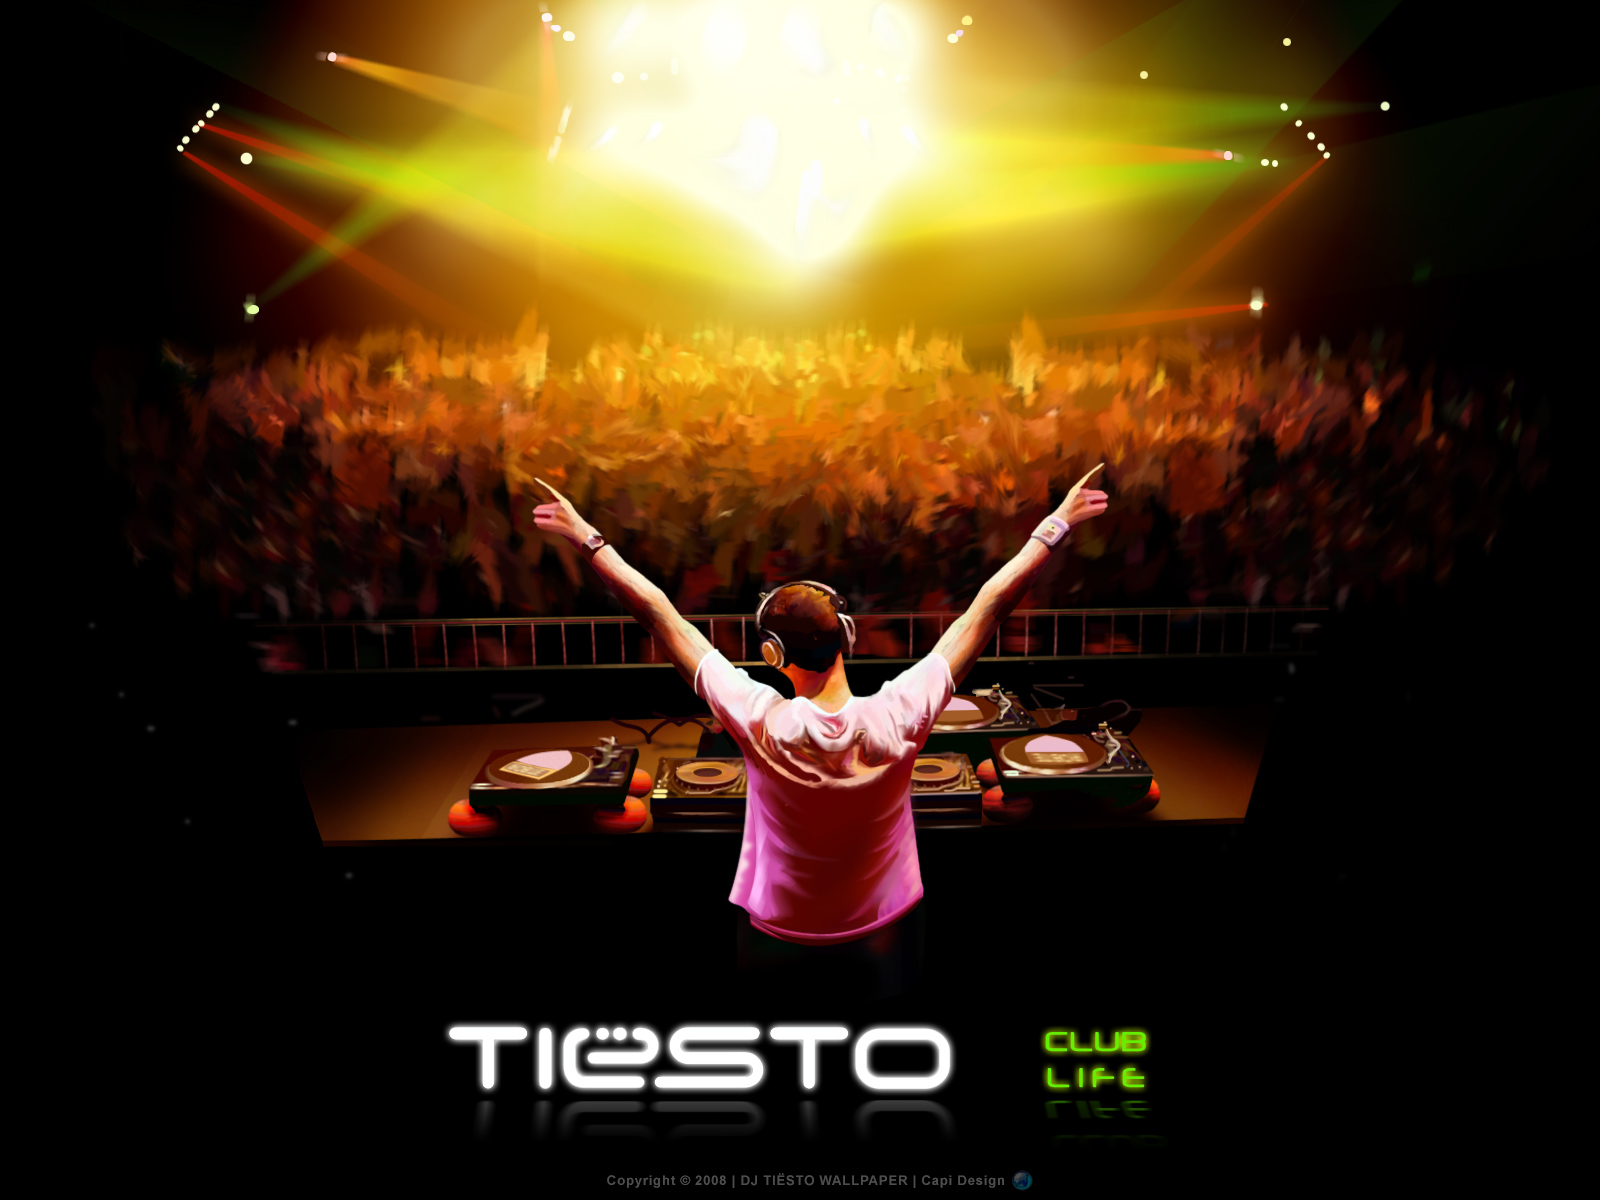 DJ Tiesto Wallpapers DJ Tiesto HD Wallpapers DJ Tiesto 1600x1200